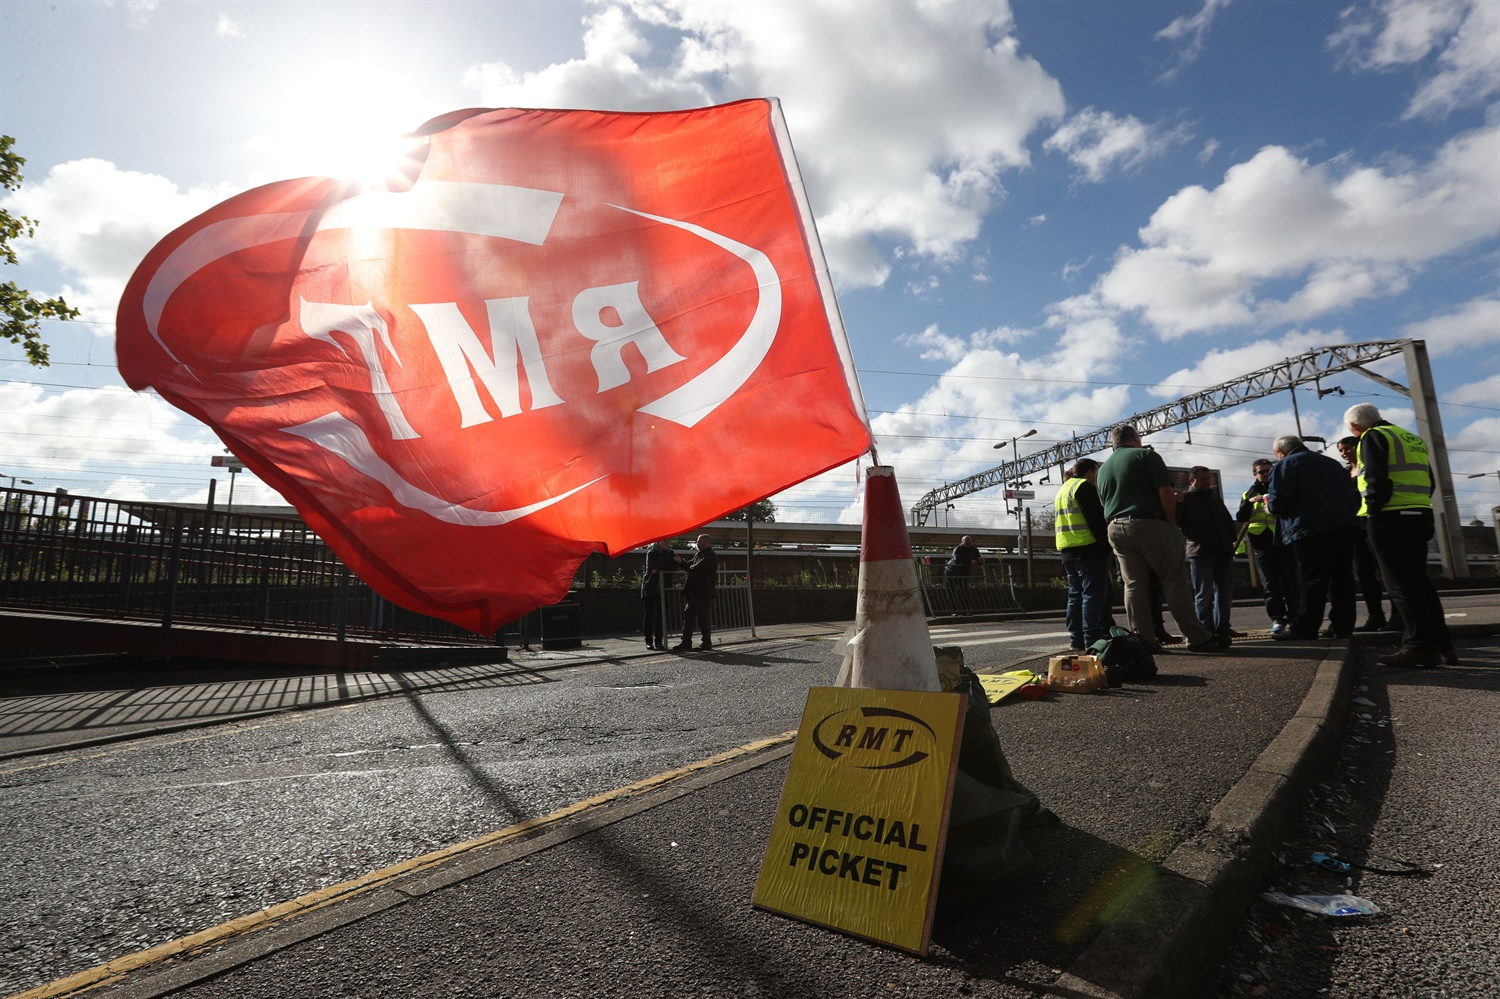 RMT announces further 24-hour strike on Northern and Merseyrail